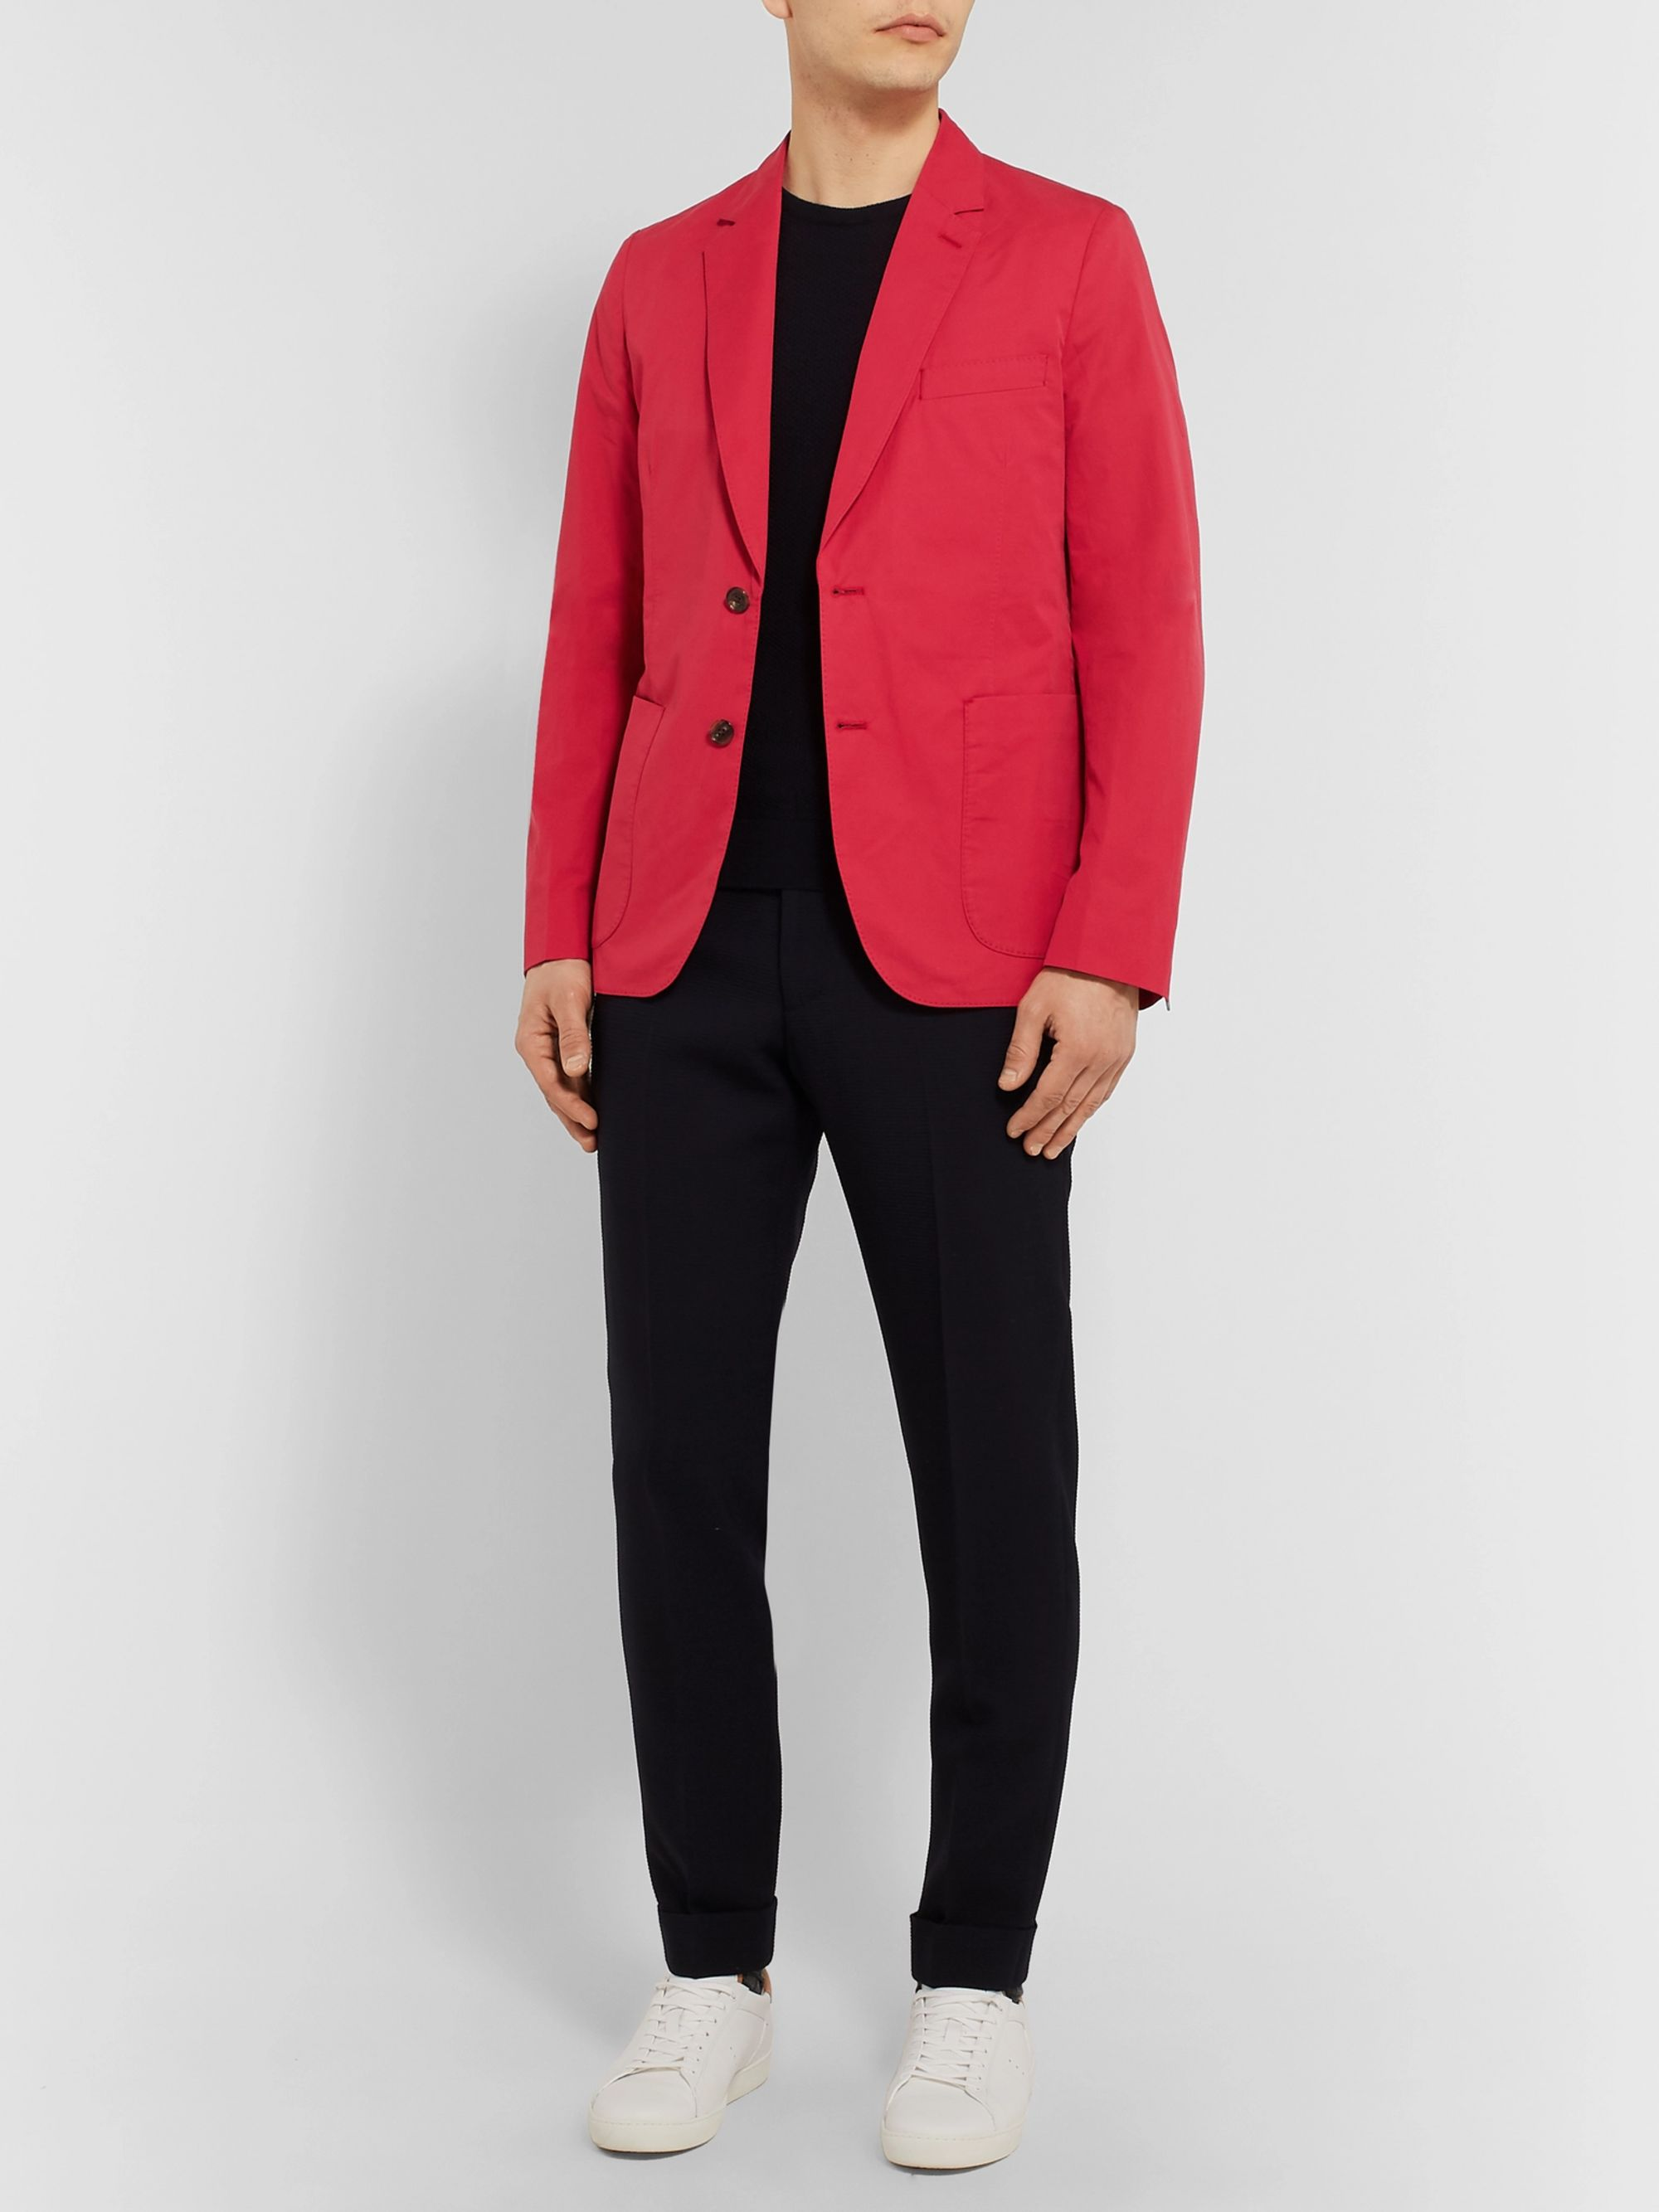 Paul Smith Red Soho Slim-Fit Unstructured Cotton Blazer